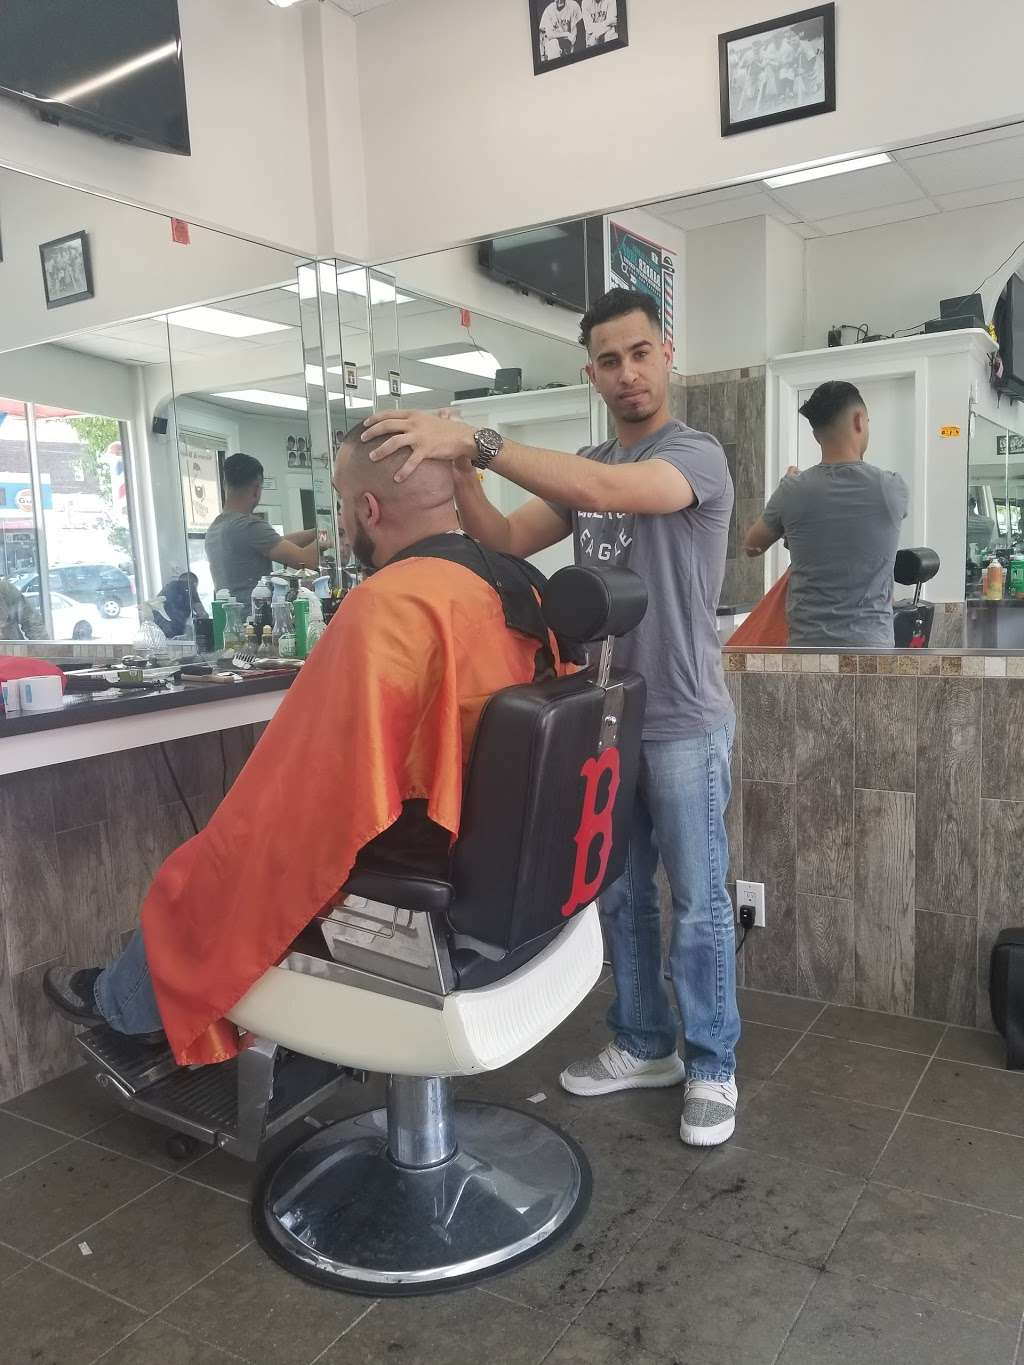 Shears & Beards Barber Shop - hair care    Photo 6 of 10   Address: 126-9 15th Ave, College Point, NY 11356, USA   Phone: (718) 353-3696